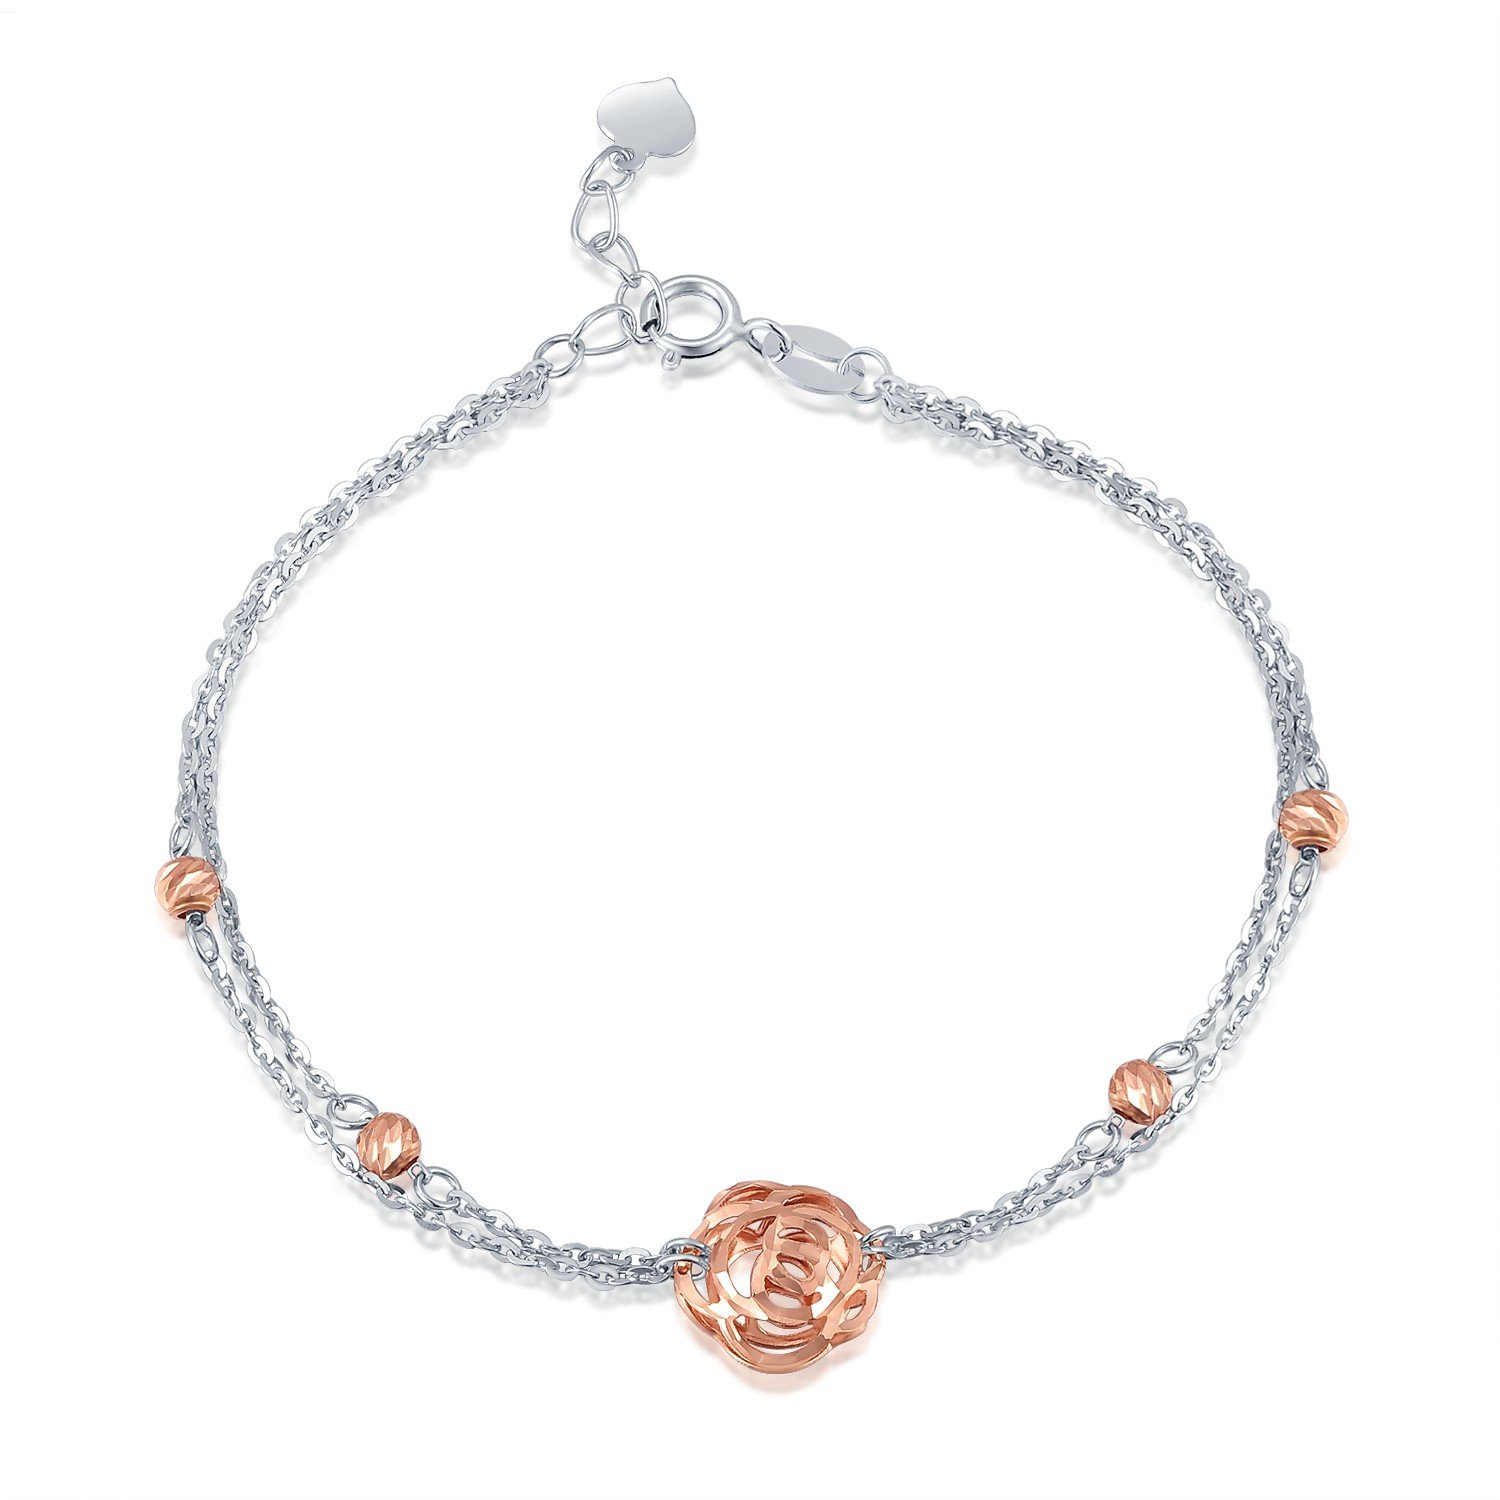 MaBelle 14K Rose and White Gold Diamond Cut Rose Flower Beaded Double Chain Bracelet (6.5'')